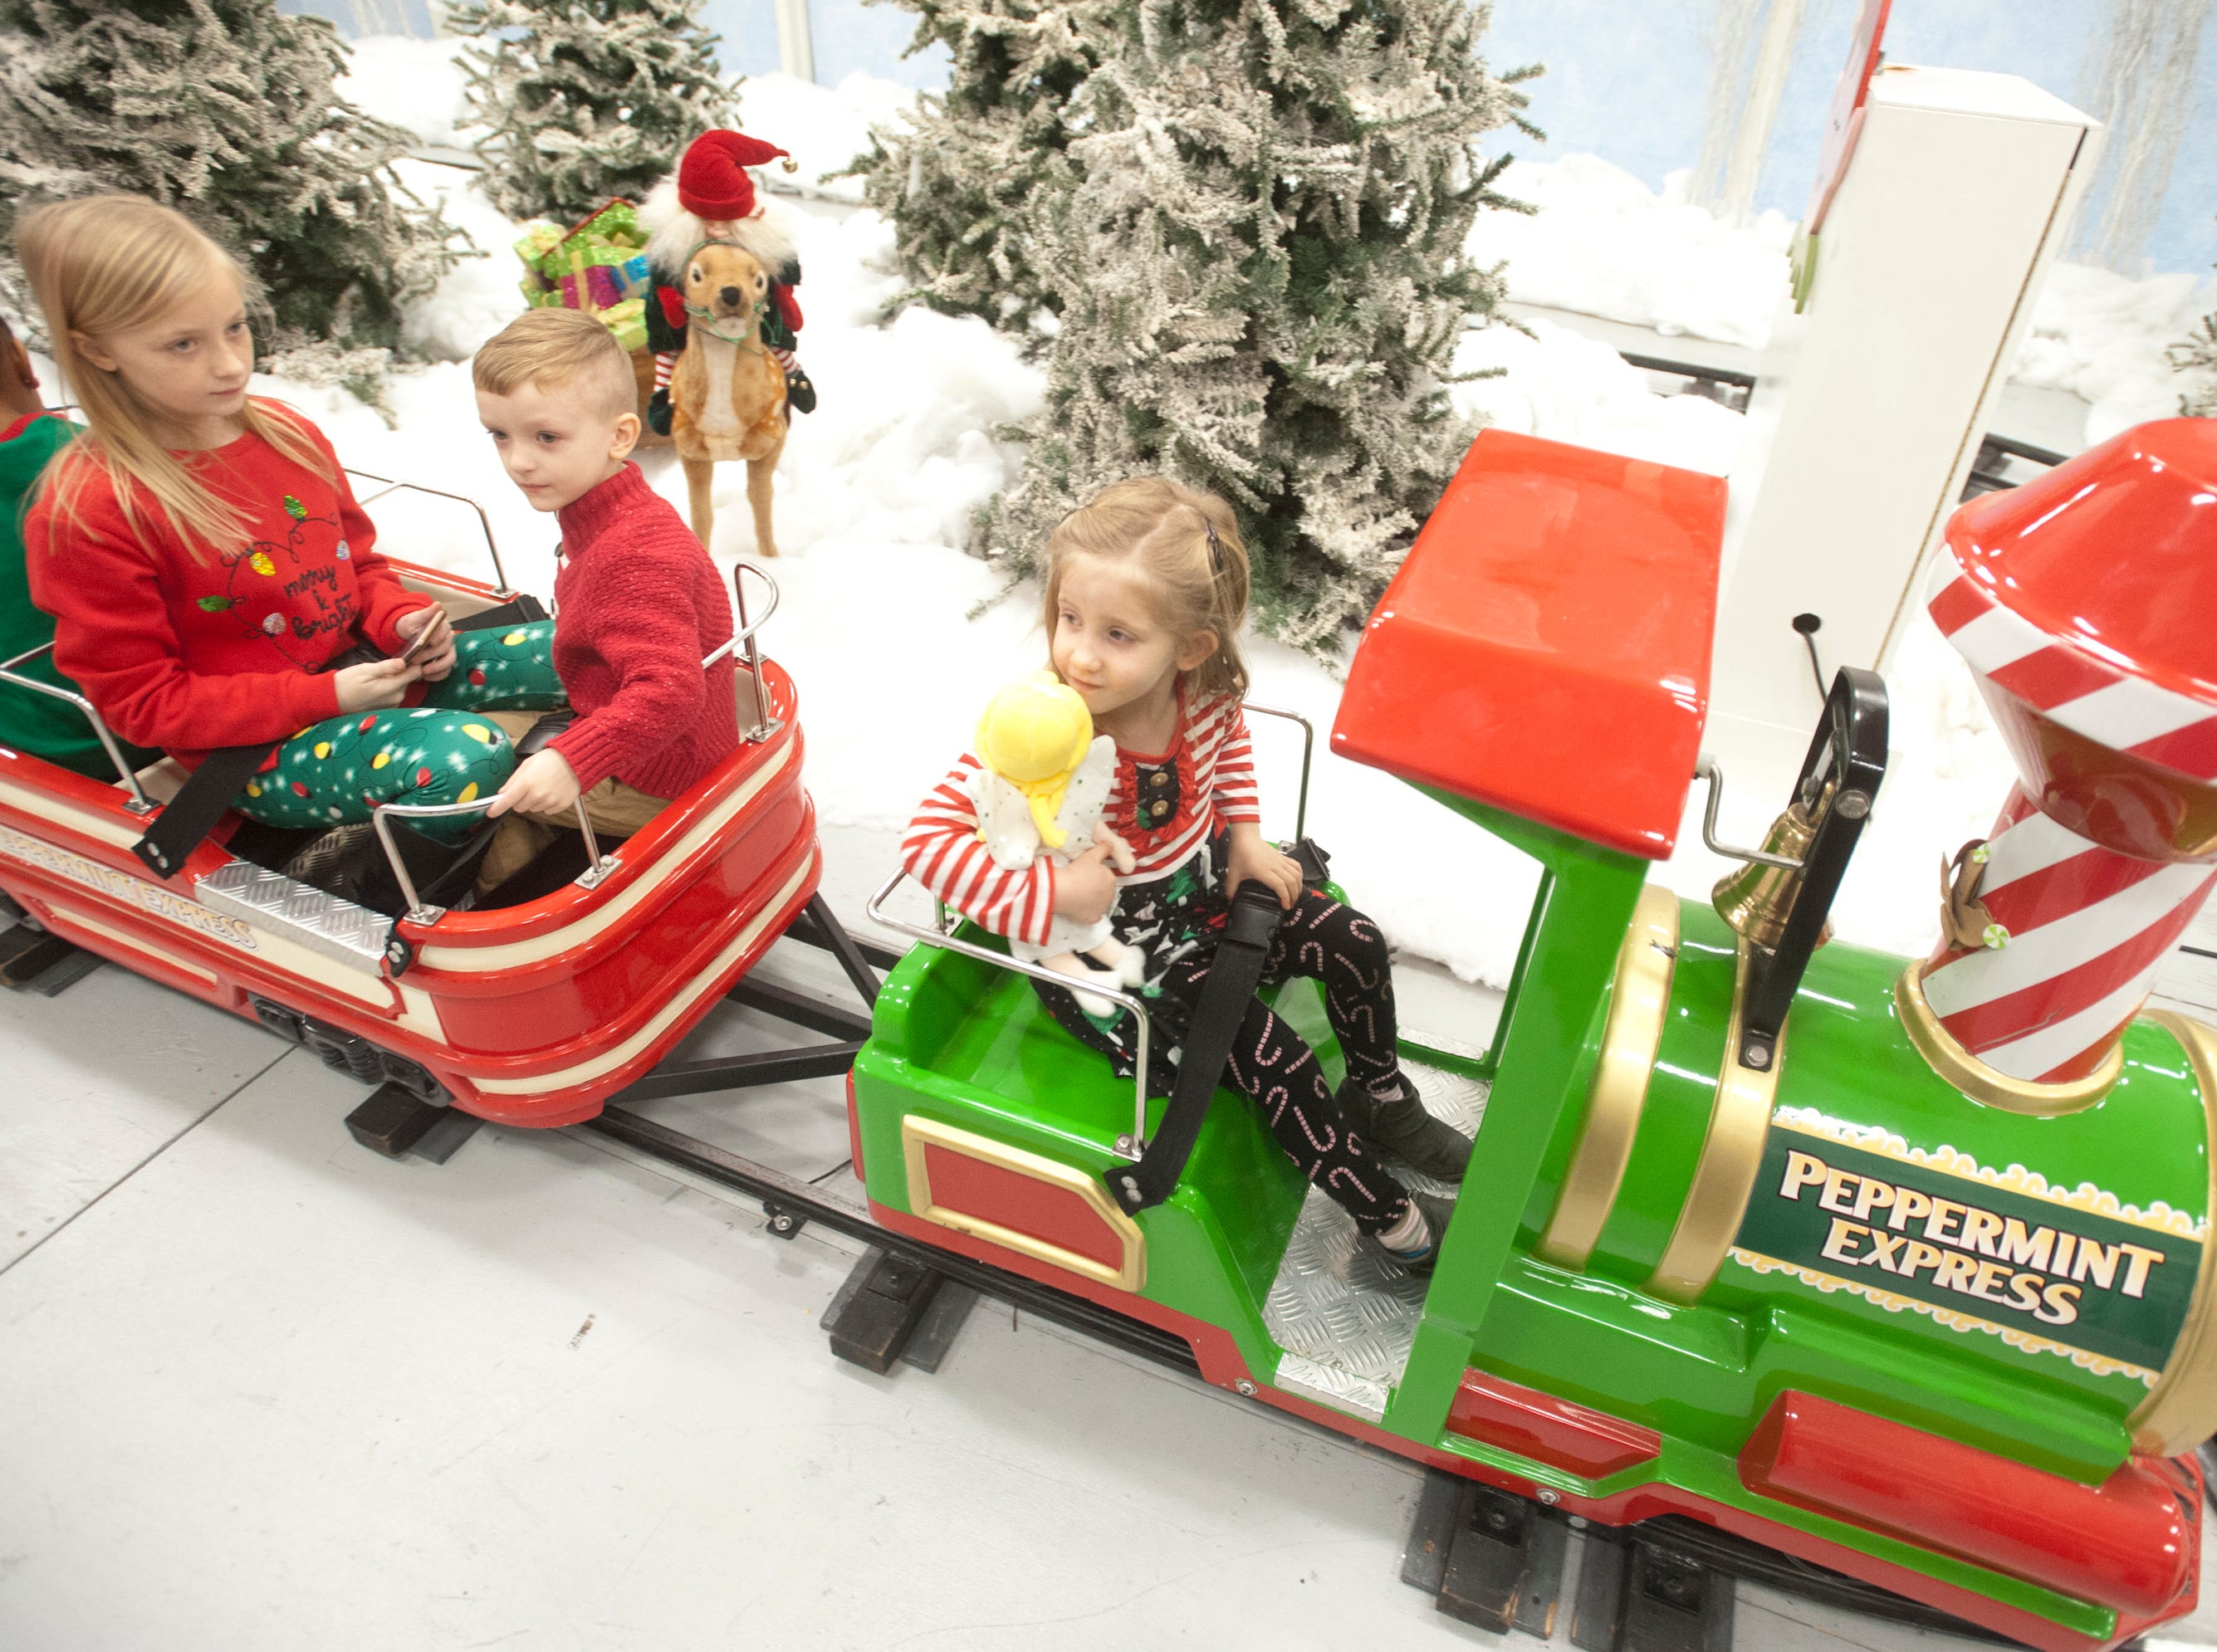 """Rayne Weber, age 4, of Eaton, OH., sits in the engineer's seat on the Peppermint Express train ride at the Galt House Hotel's sold-out event,  """"Breakfast with Santa."""" She was in town visiting her grandmother who lives in Jeffersonville.22 December 2018"""